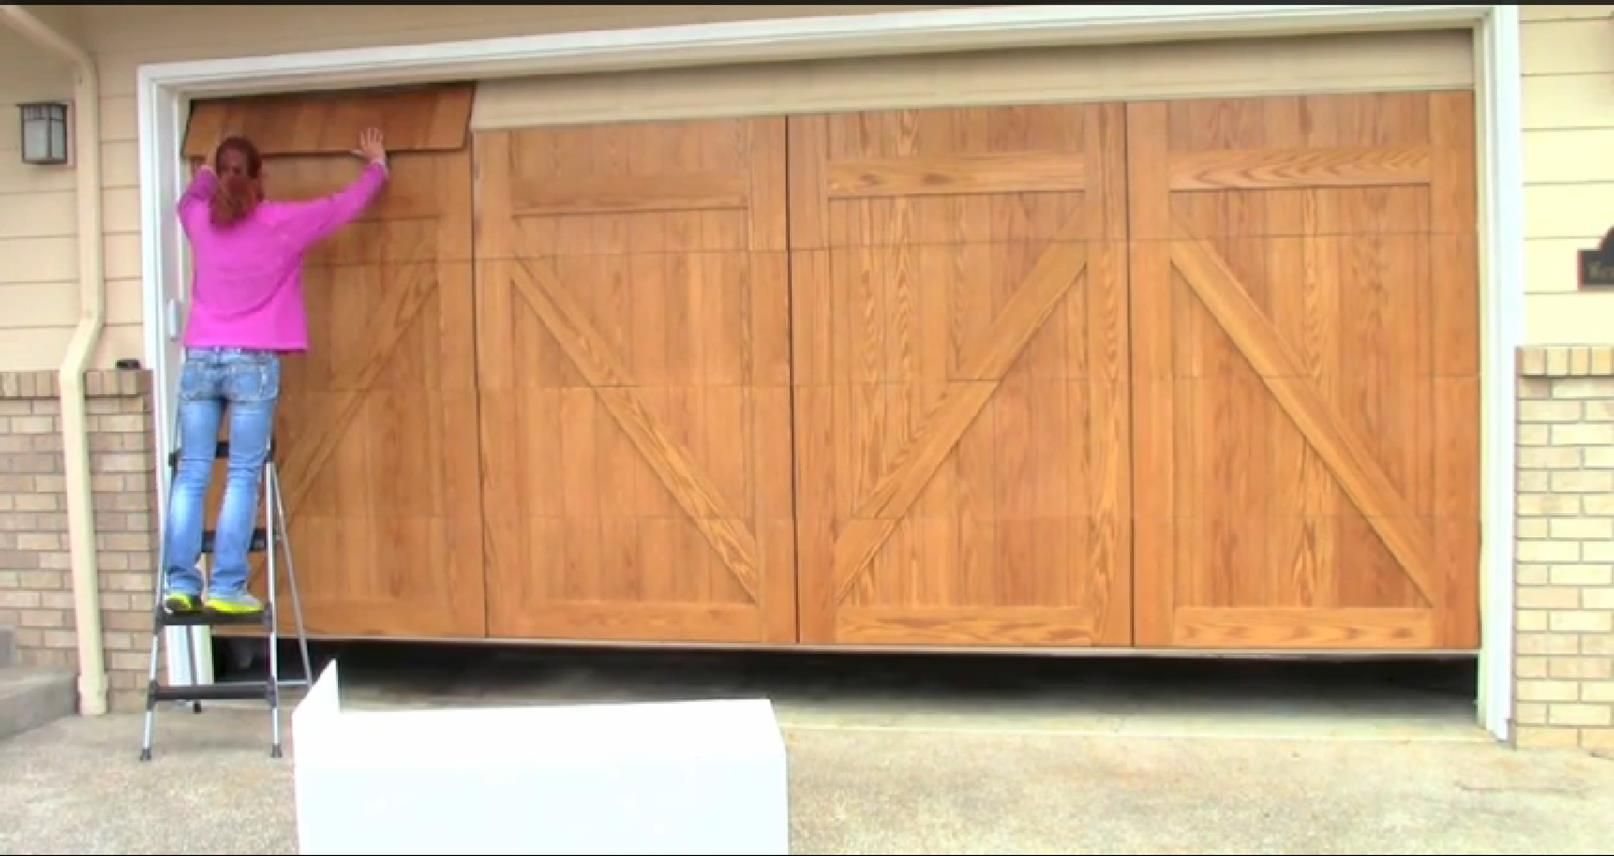 11 To Install The Top Panels Lower Your Garage Door All The Way Then Open Slightly Garage Doors Wood Garage Doors Metal Panels